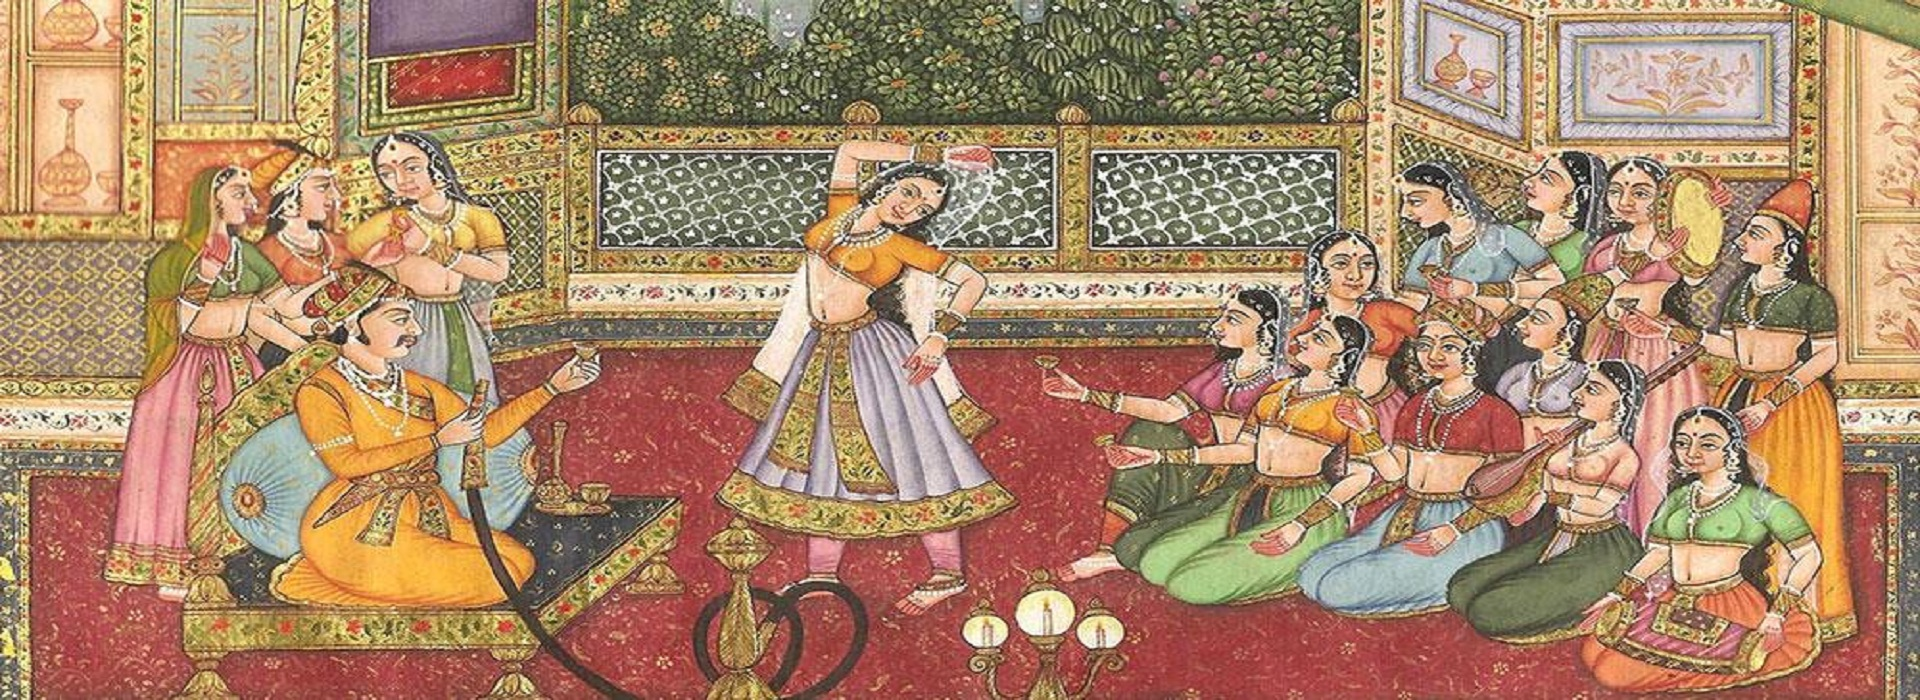 Indian Paintings History, techniques & facts